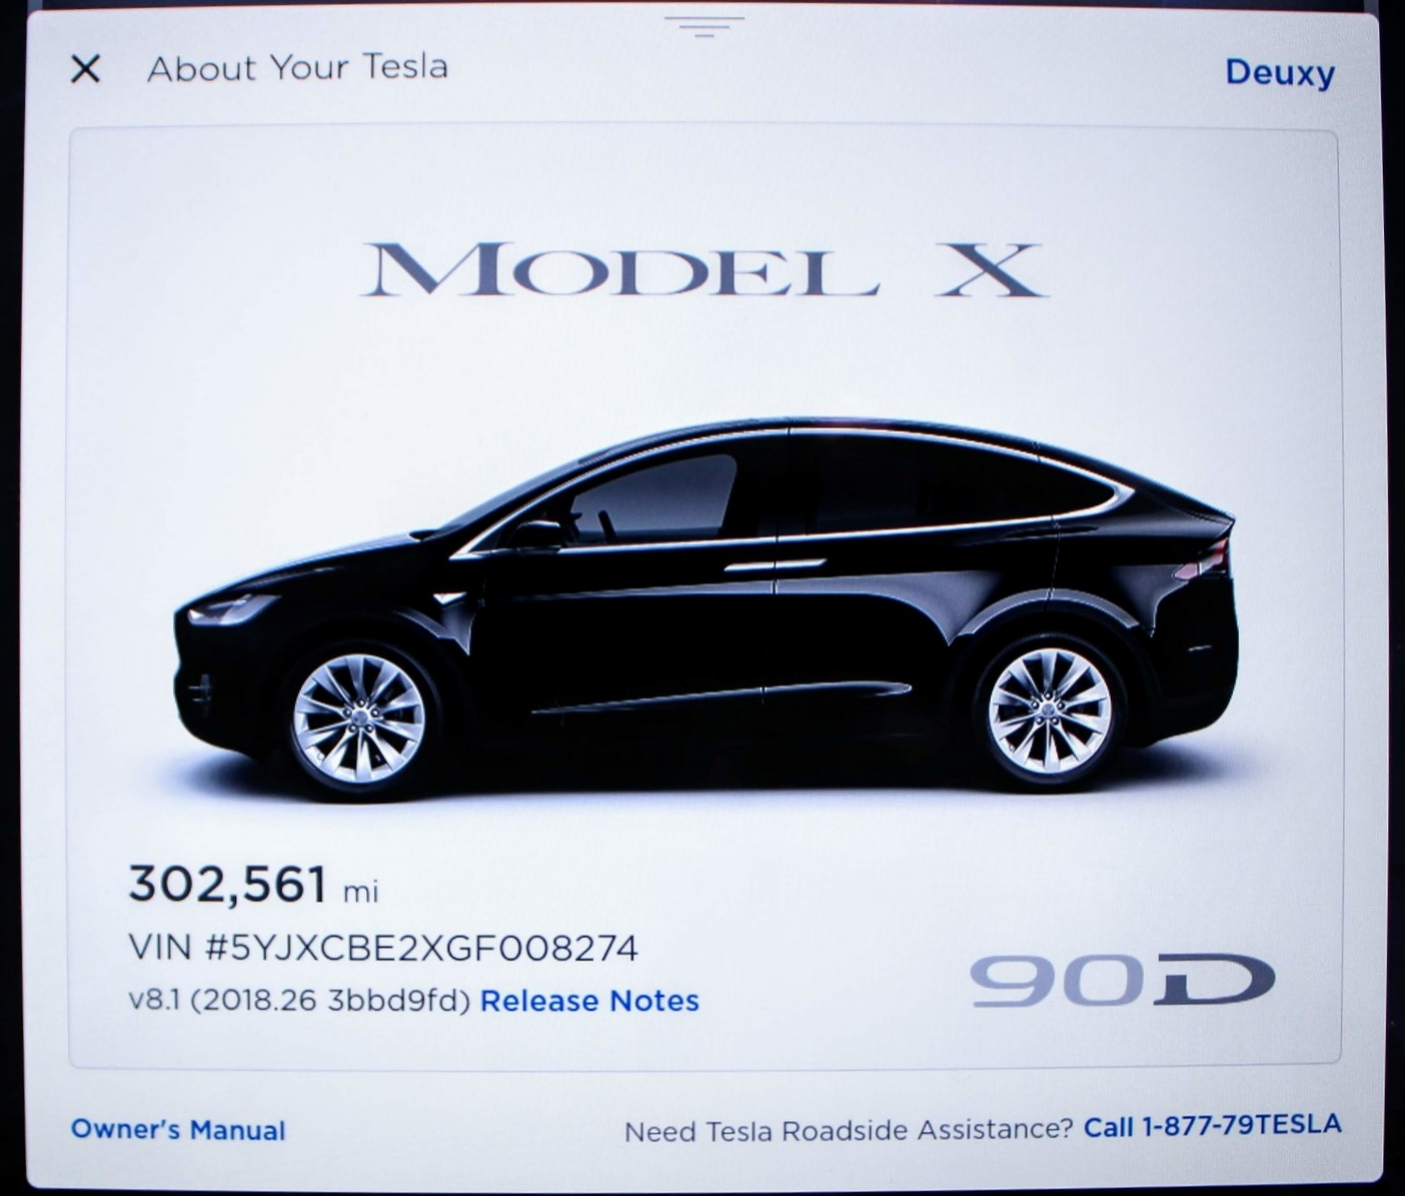 Model X 90d Deuxy Achieves 300 000 Miles In Less Than Two Years